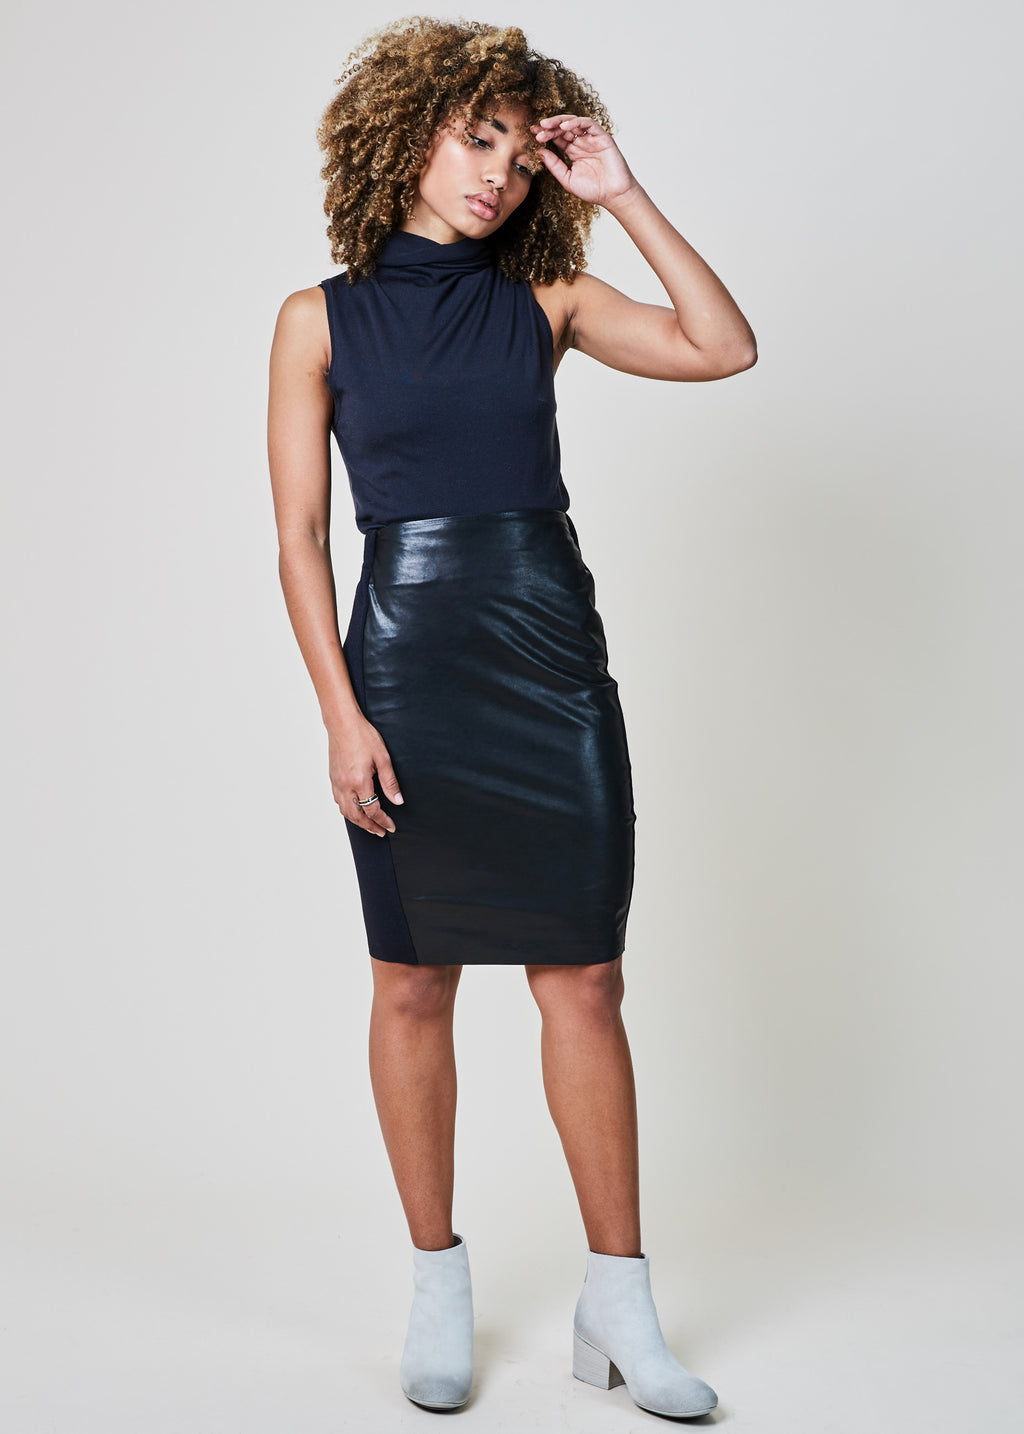 Lui Leather Front Skirt